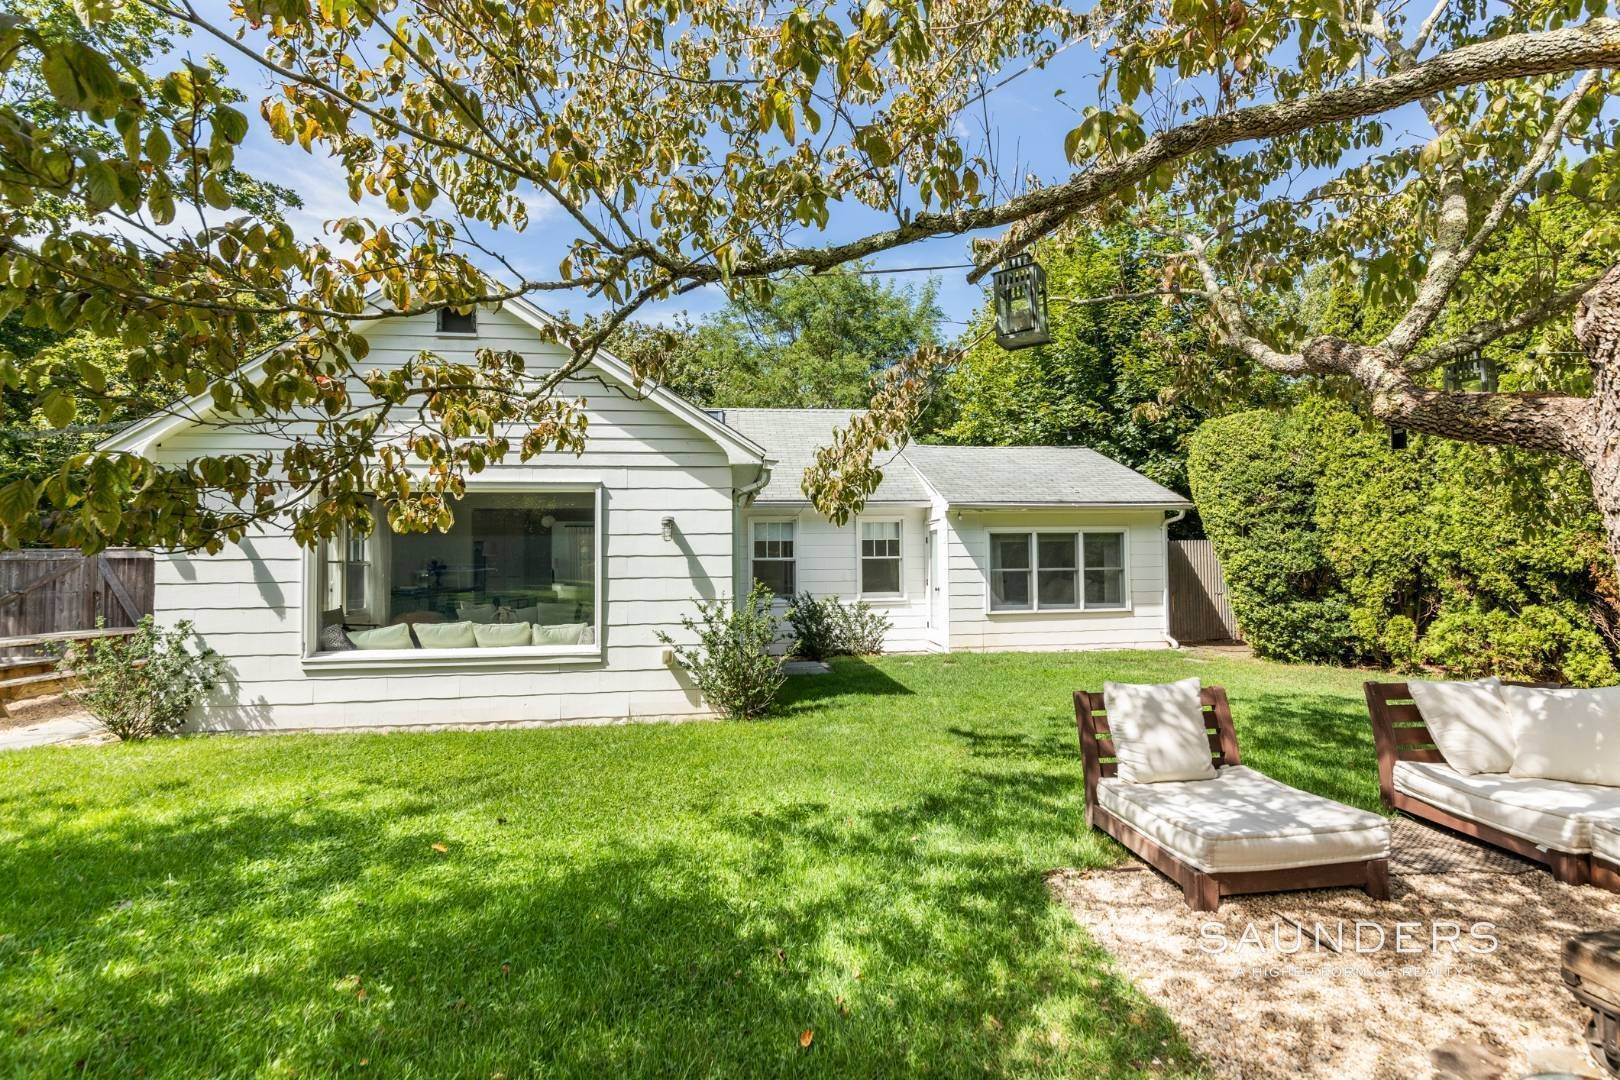 19. Single Family Homes for Sale at South Of Highway - Turnkey Charmer 136 Cove Hollow Road, East Hampton, East Hampton Town, NY 11937